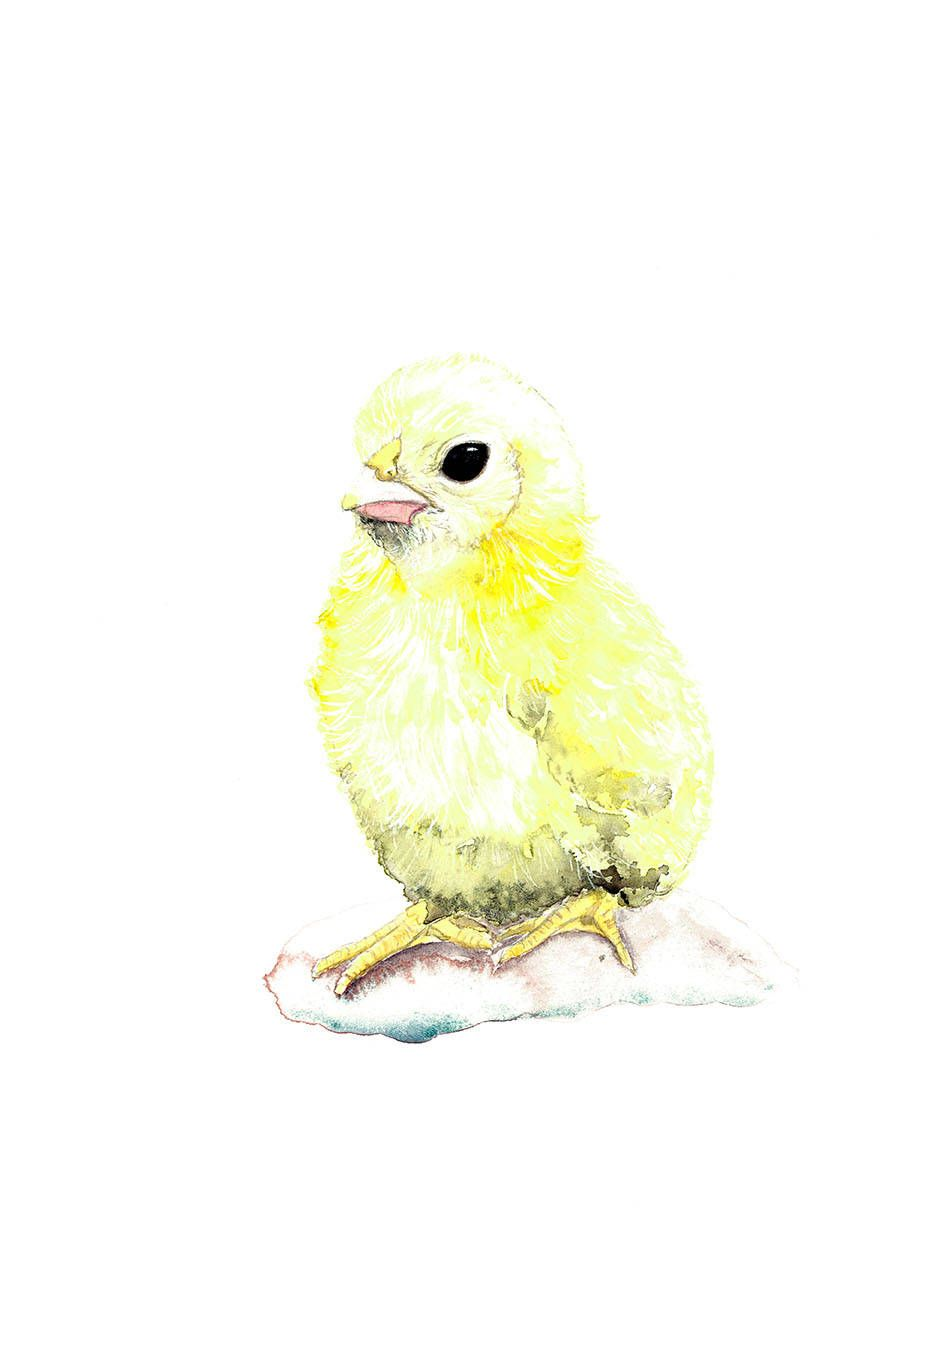 Yellow Chick Print, Chick Watercolor, Nursery Wall Art, Farm Animal ...